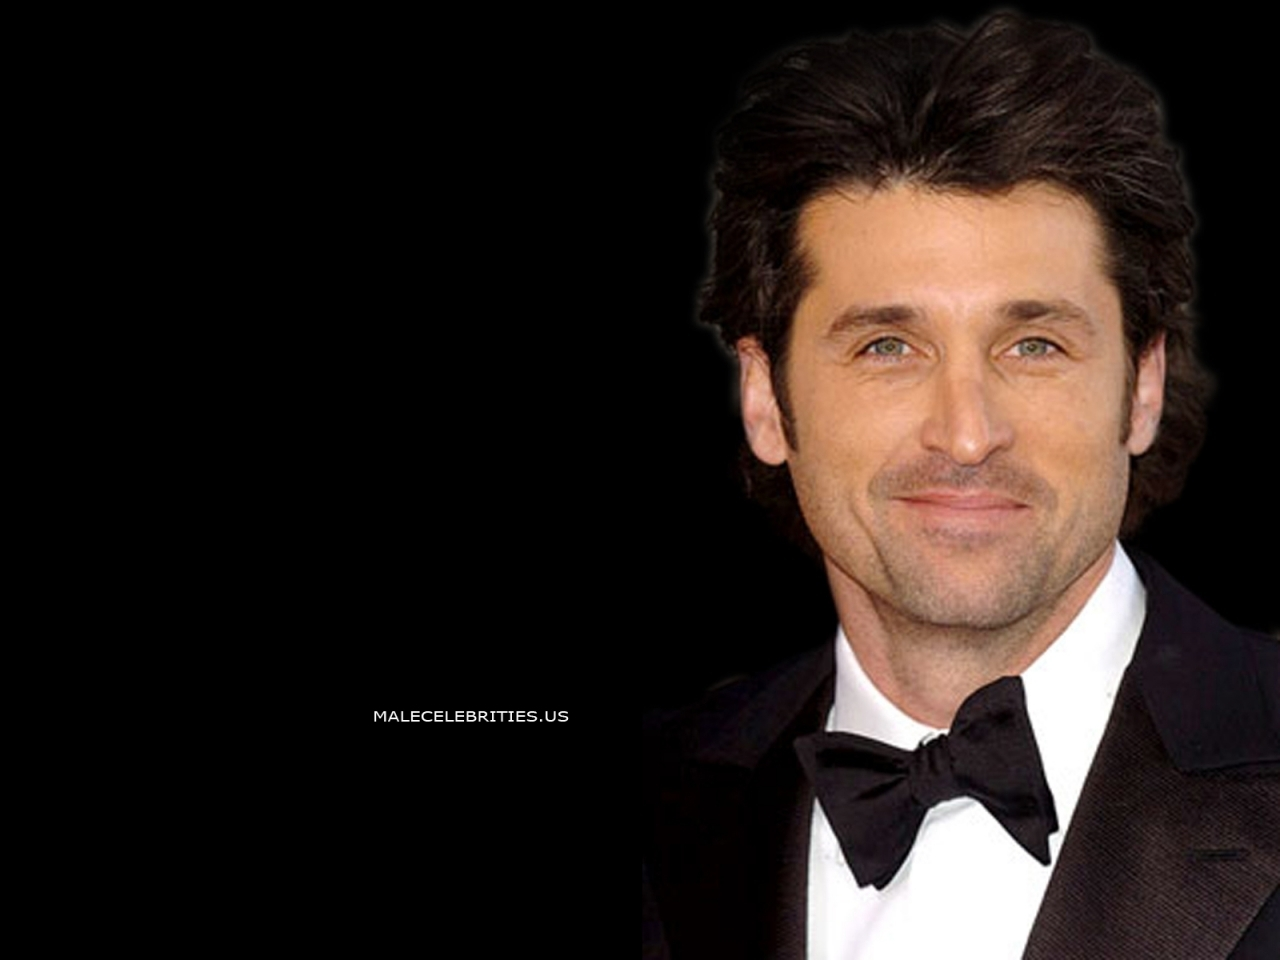 Patrick Dempsey Wallpapers Patrick Dempsey wallpapers Grey s Anatomy Actors Wallpaper